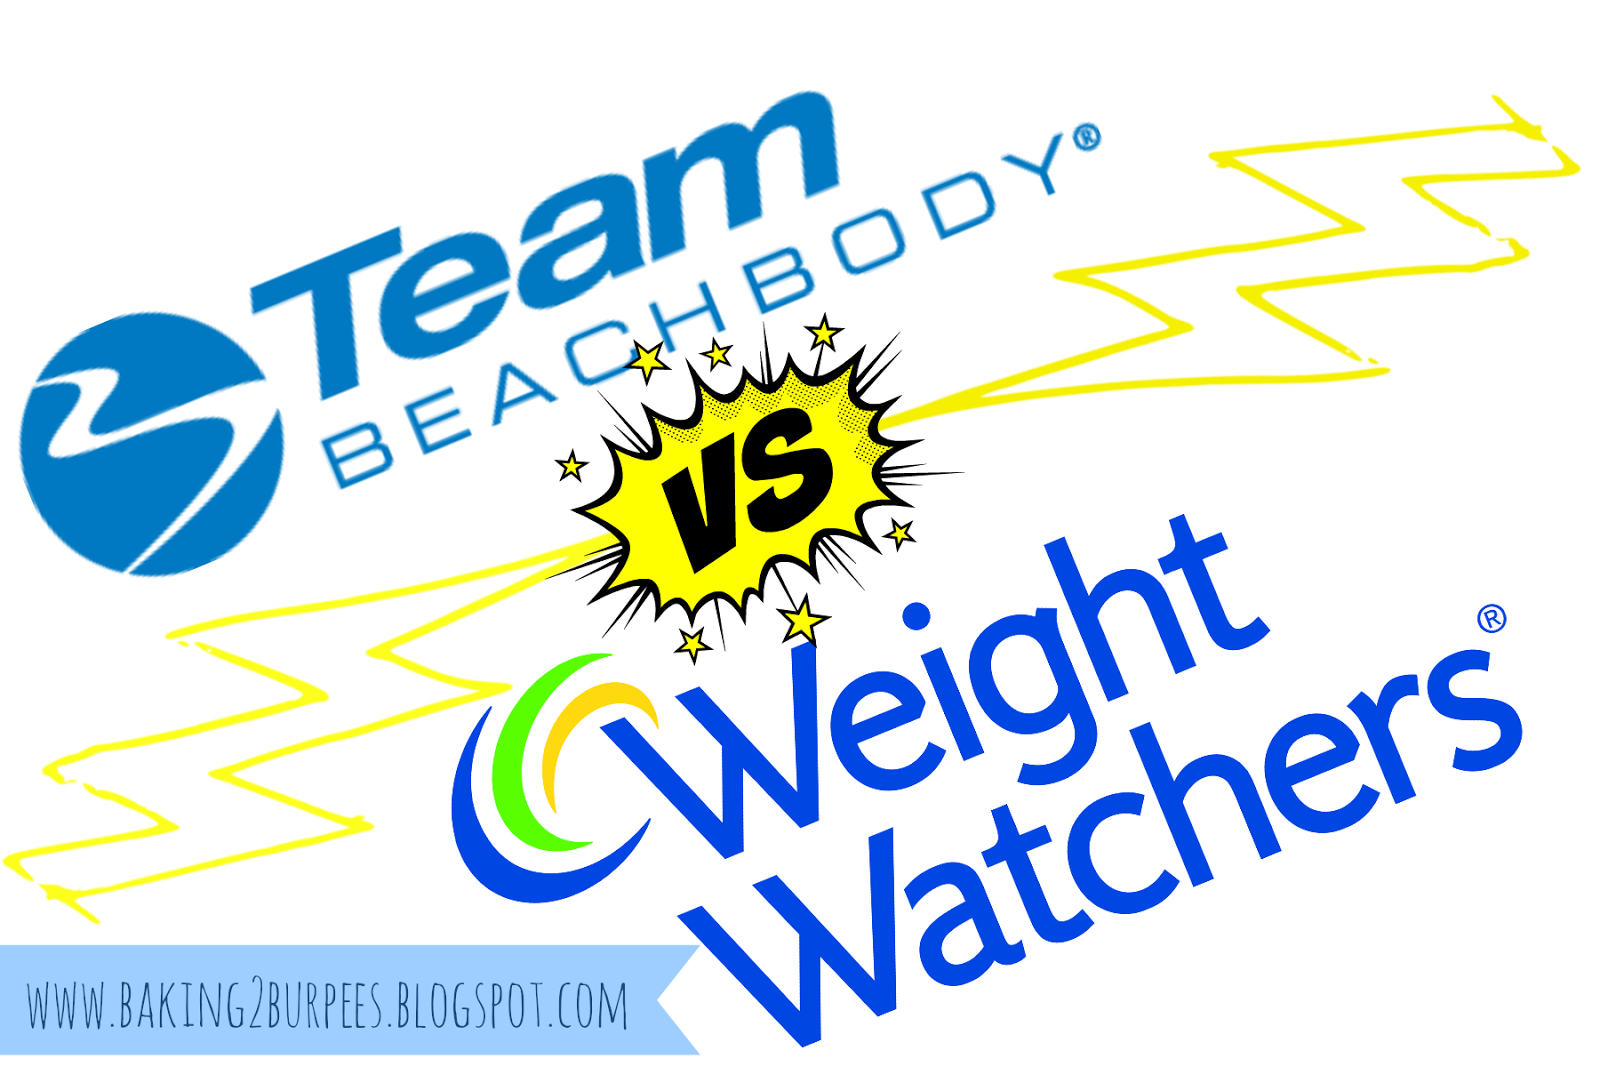 Erin Traill, Diamond Beachbody Coach, Team Beachbody, Weight Watchers, before and after photos, success story, weight loss programs, celebrity weight loss